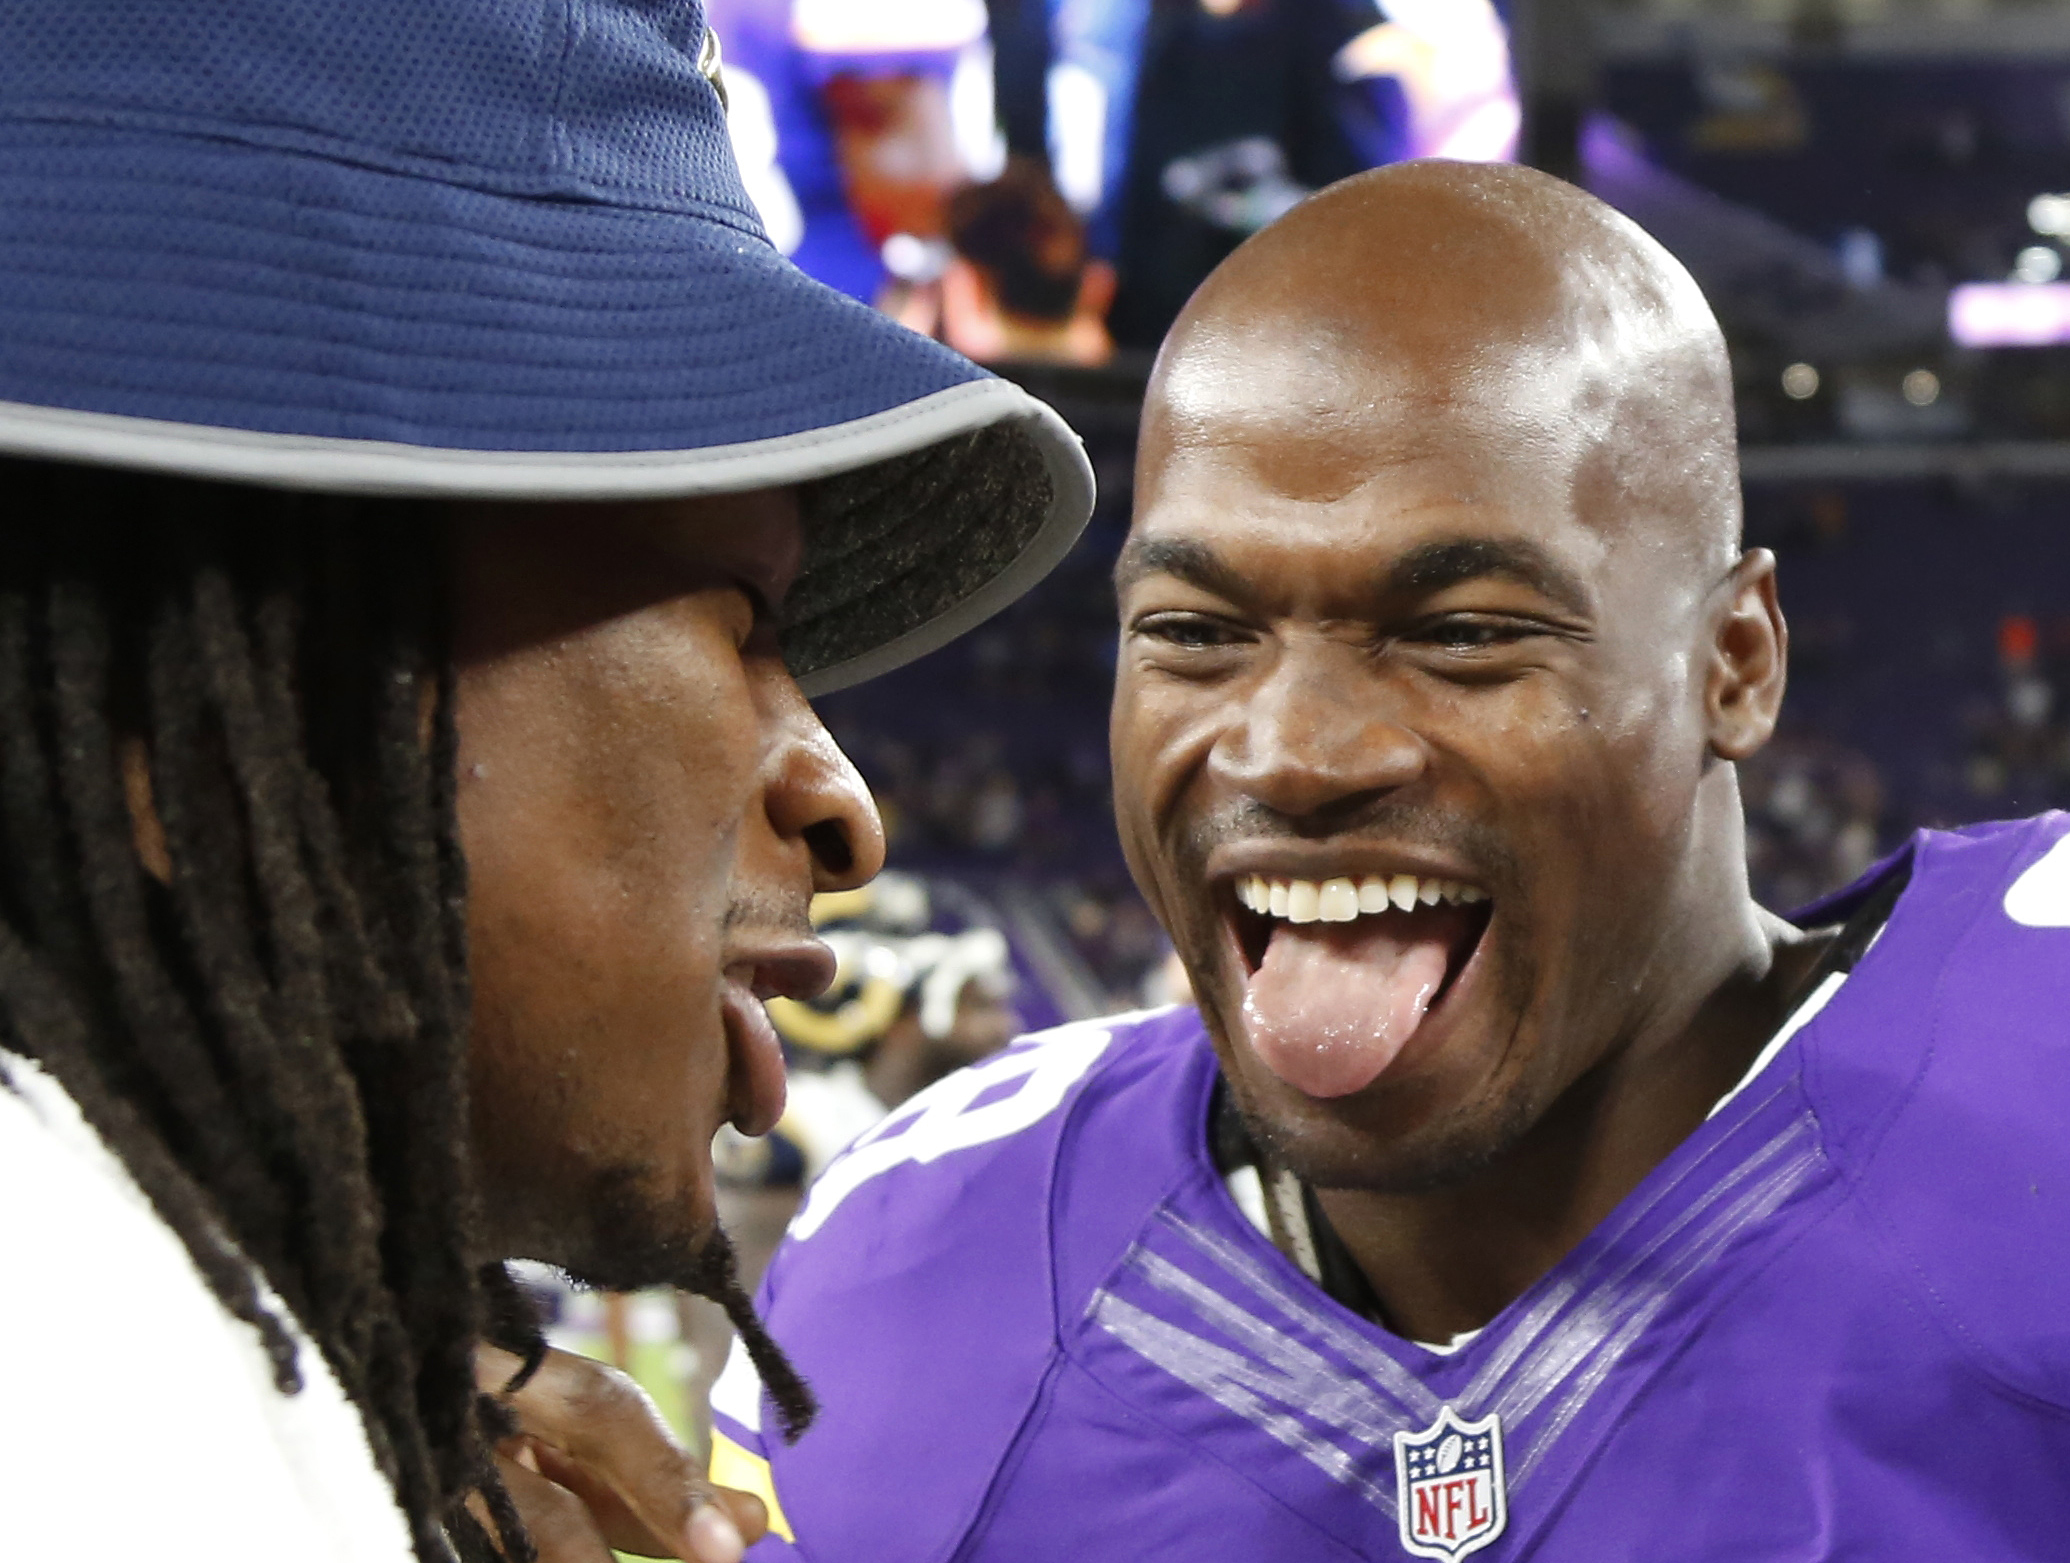 FILE - In this Sept. 1, 2016, file photo, Minnesota Vikings running back Adrian Peterson, right, talks with Los Angeles Rams running back Todd Gurley, left, after an NFL preseason football game, in Minneapolis. Peterson can hardly sleep, so eager for the